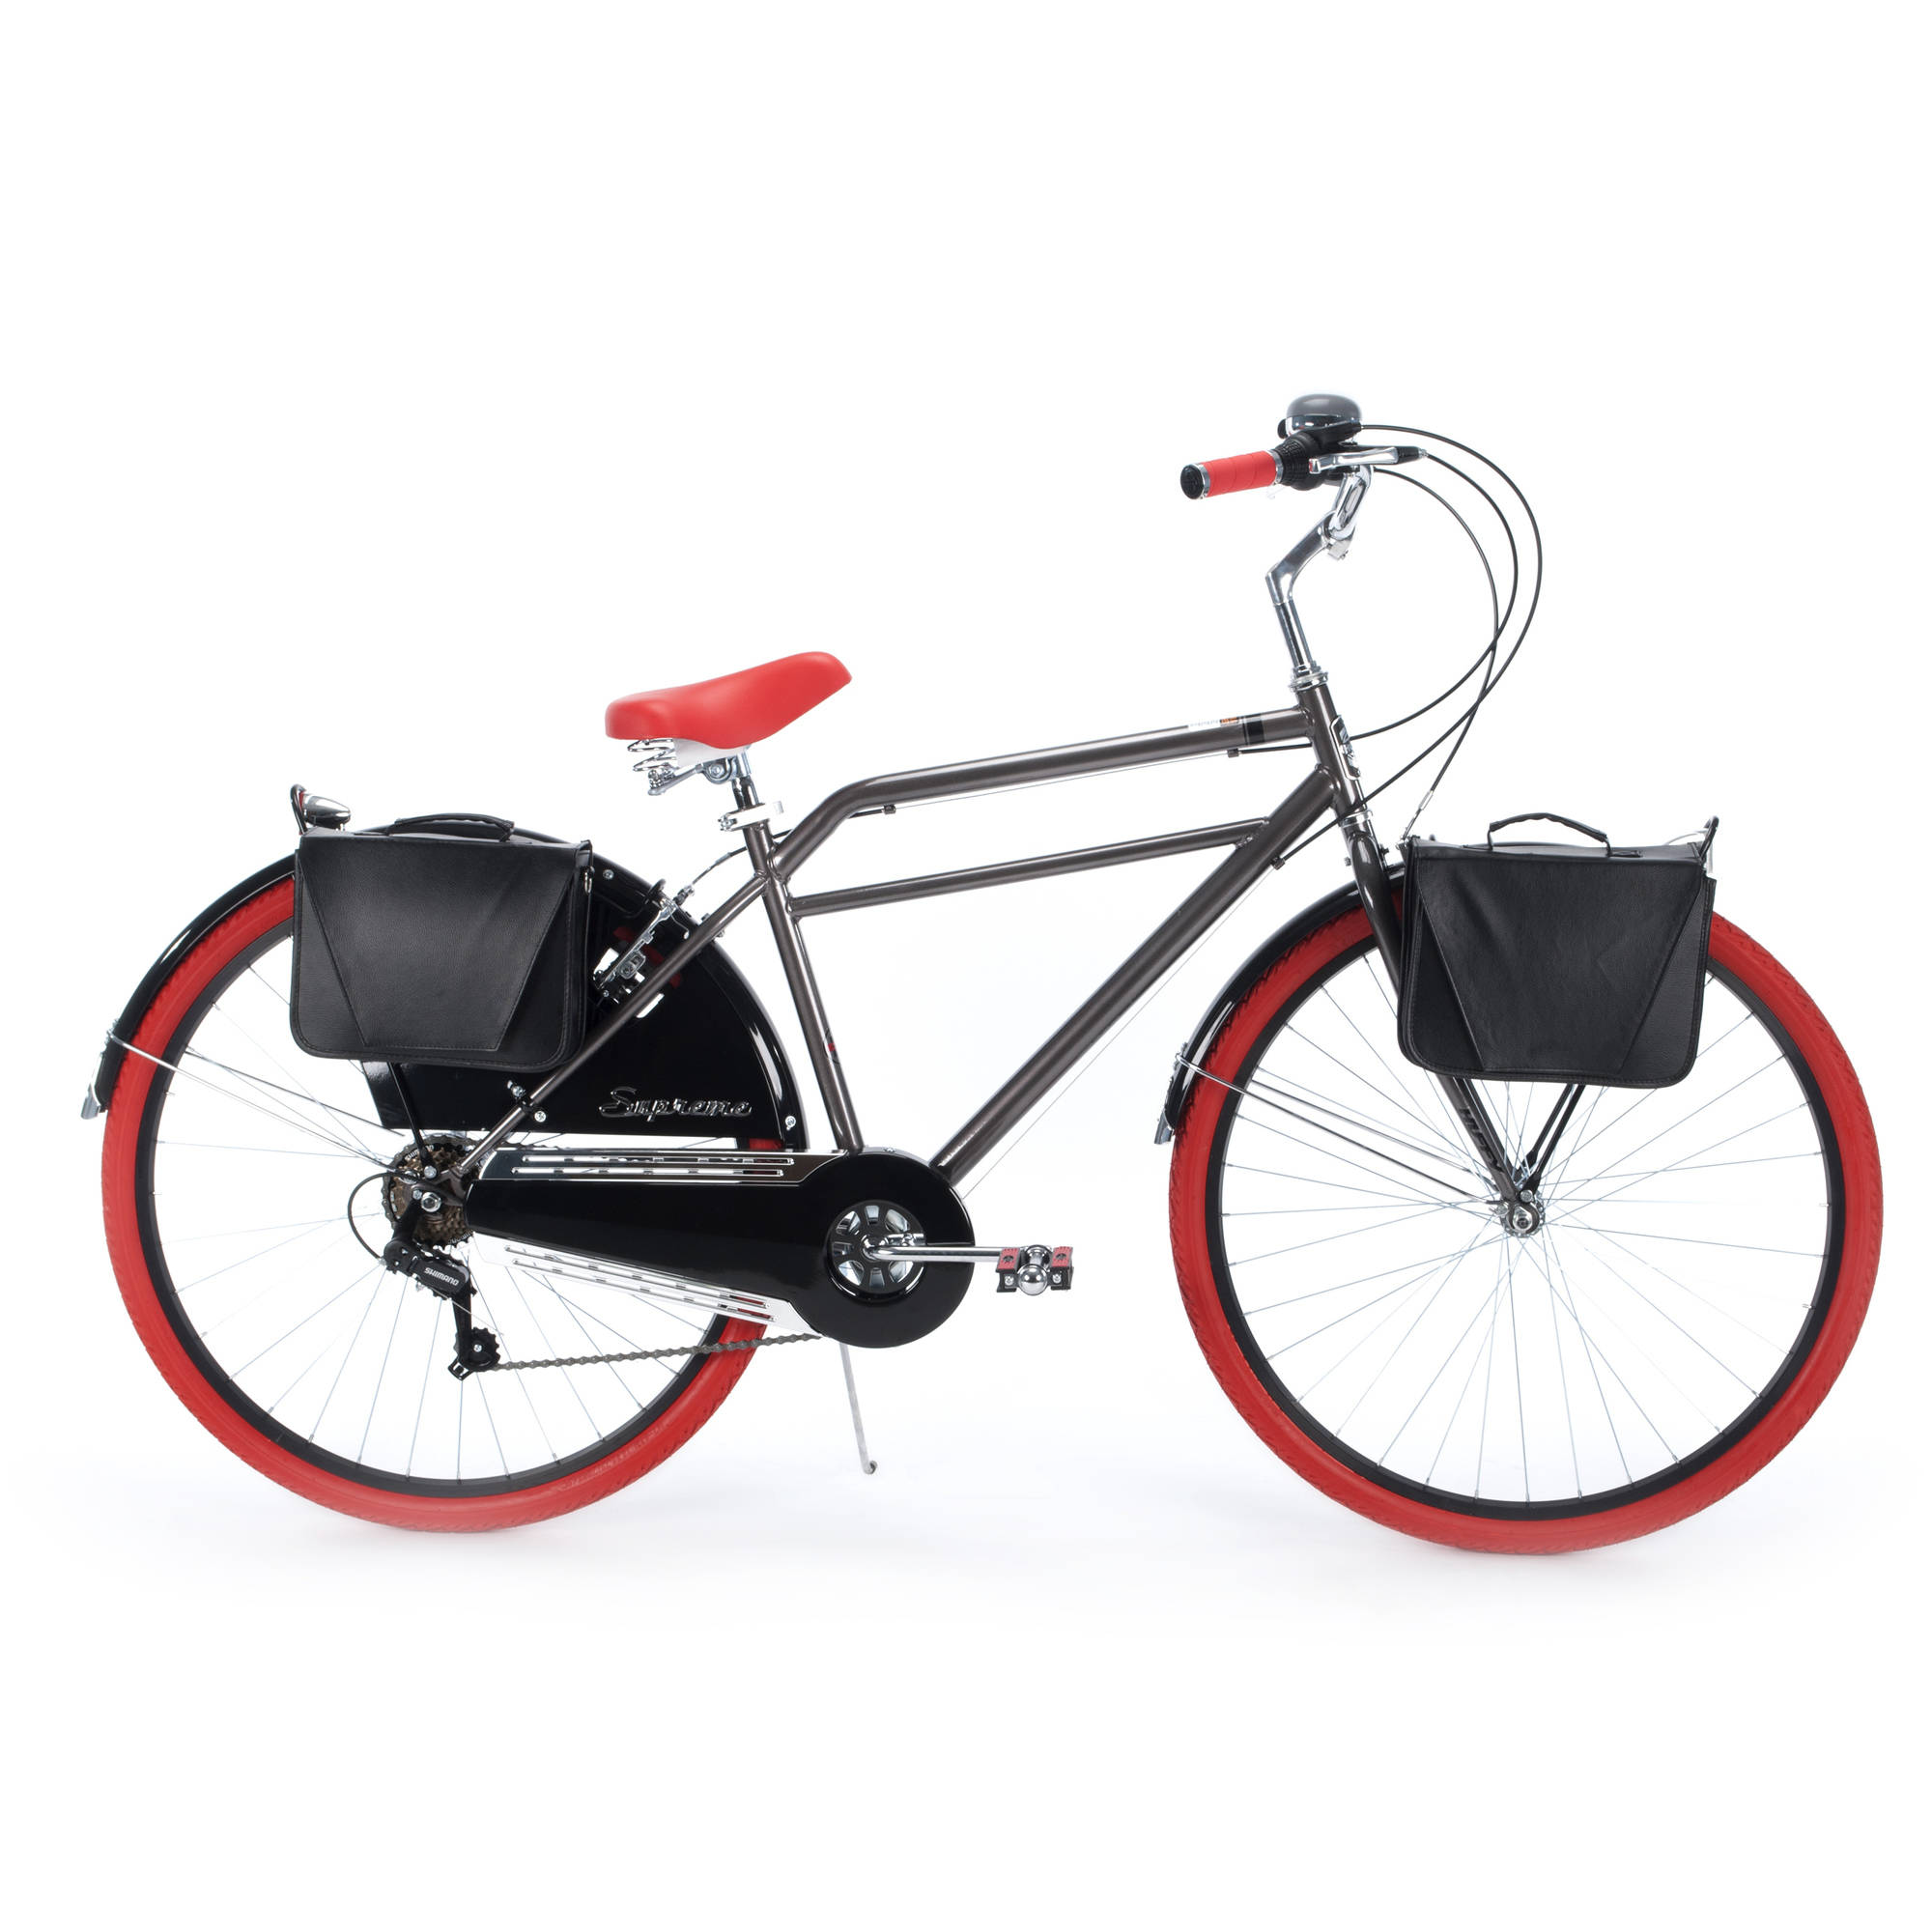 700c Huffy Supreme Men's Cruiser Bike, Charcoal